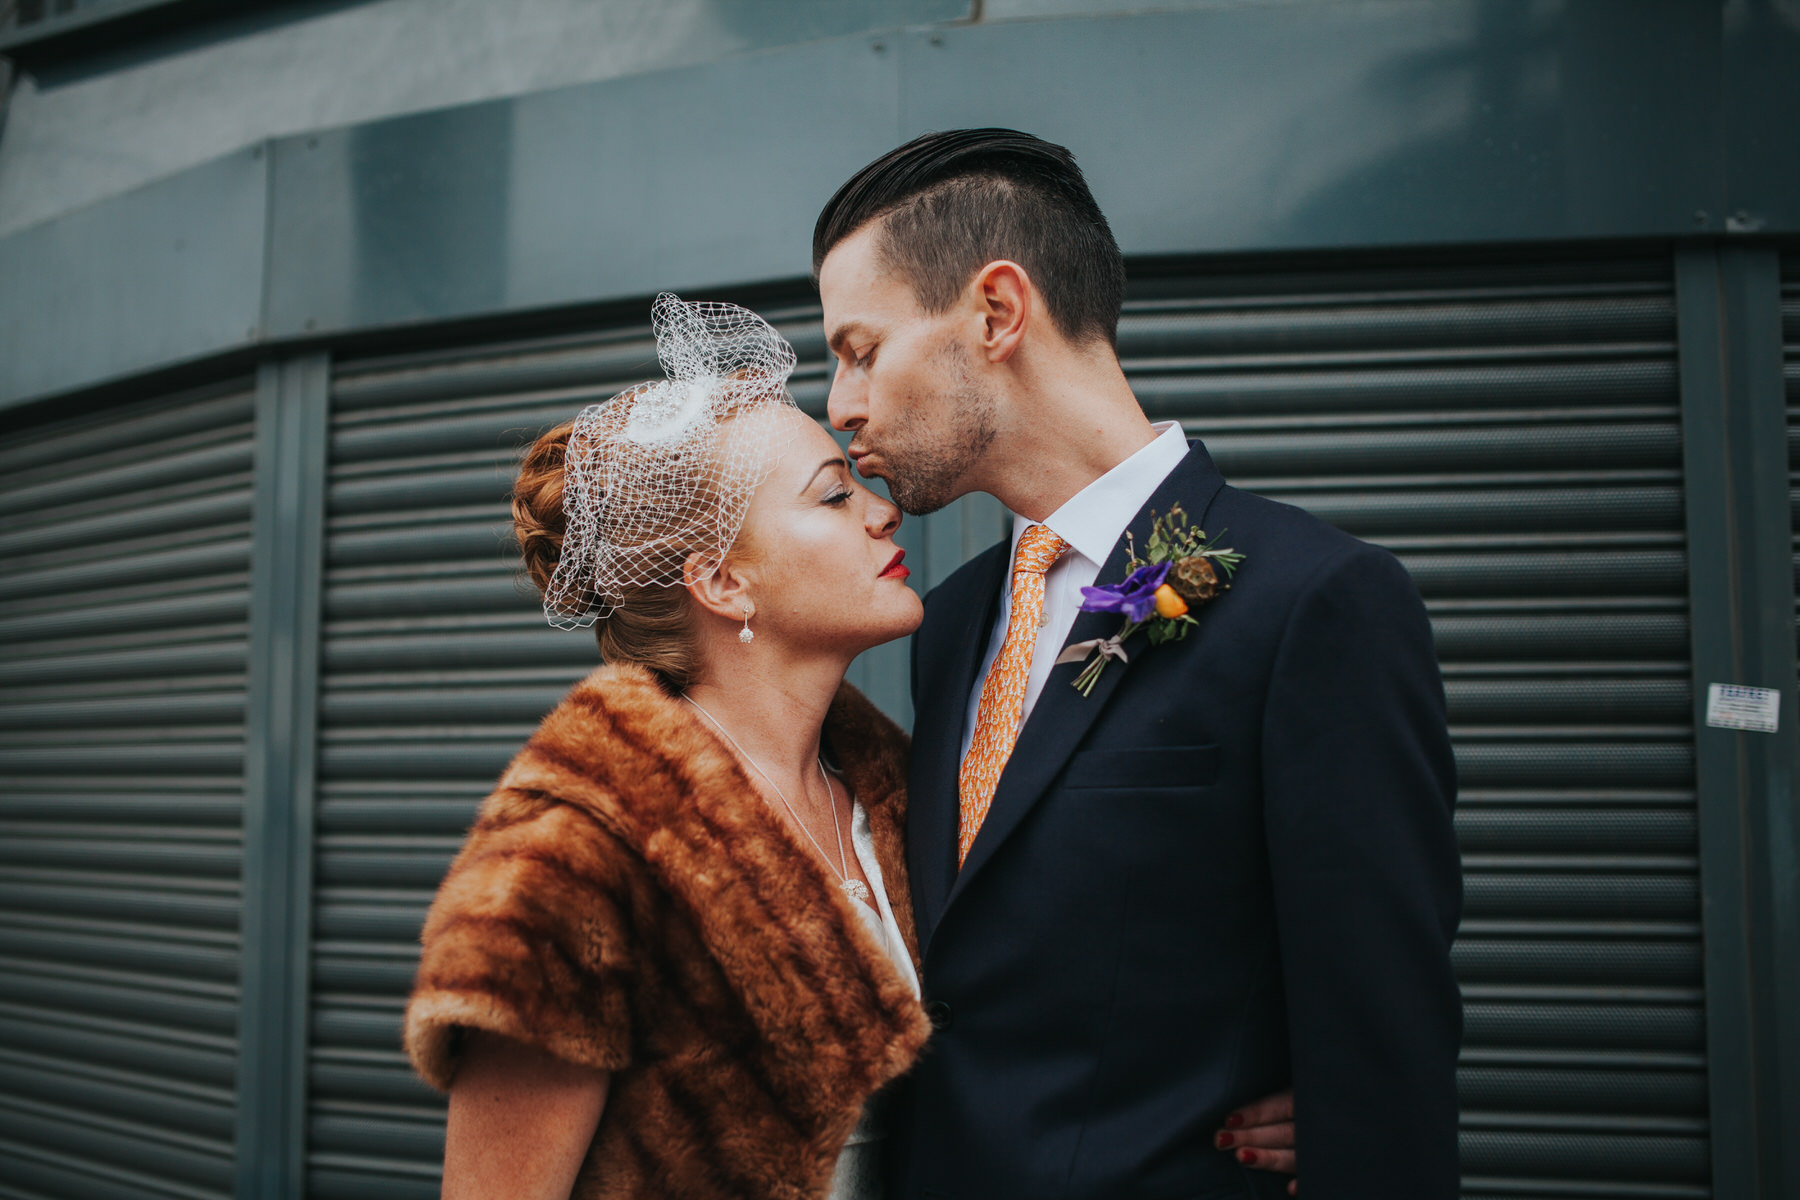 MS-Londesborough-Pub-wedding-Hackney-alternative-photographer-56-bride-wearing-fur-stole-over-wedding-dress-kissing-groom-grey-metal-background.jpg